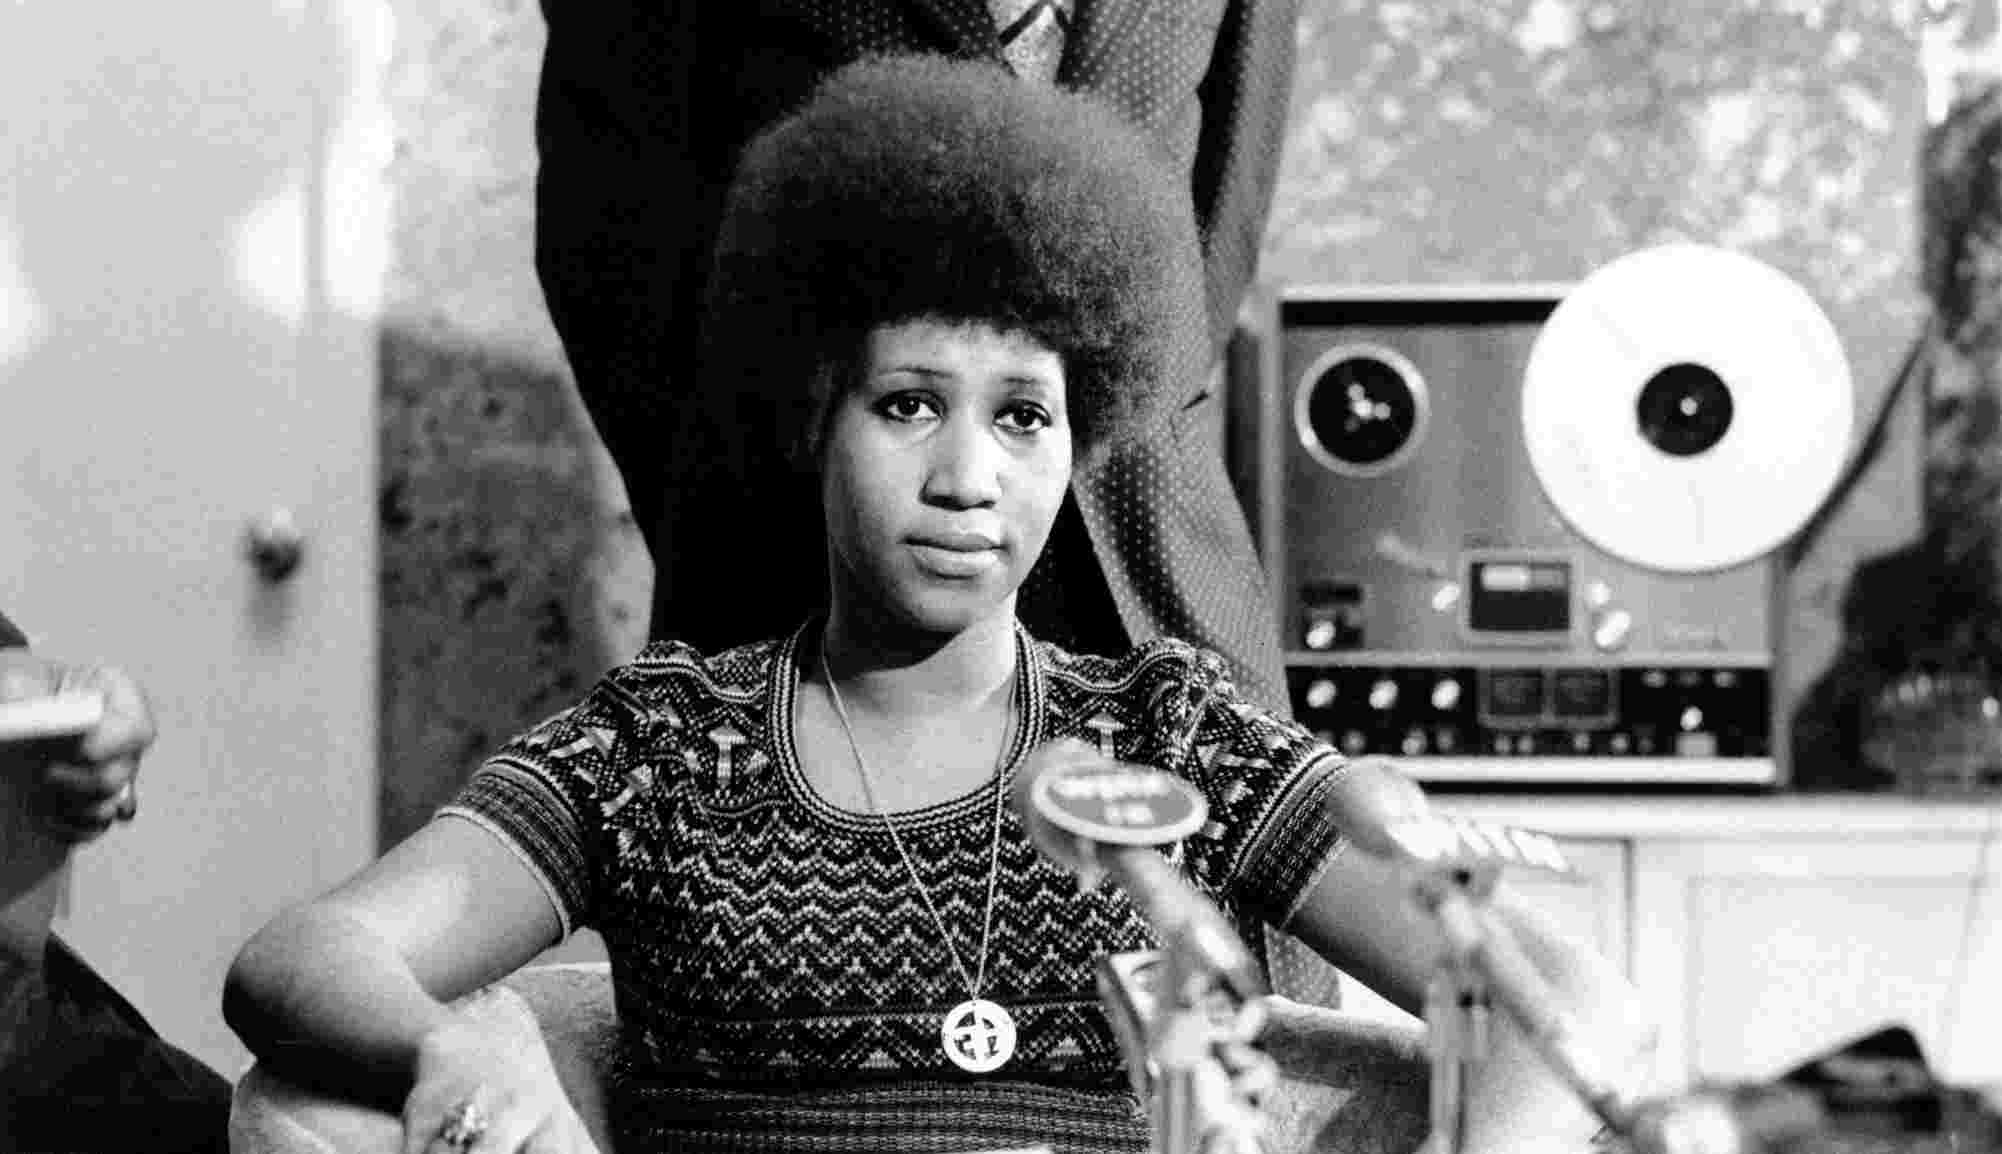 Franklin - … for Aretha Franklin and her cover of Respect, song originally written by Otis Redding, and released in 1967 with her album I Never Loved a Man.